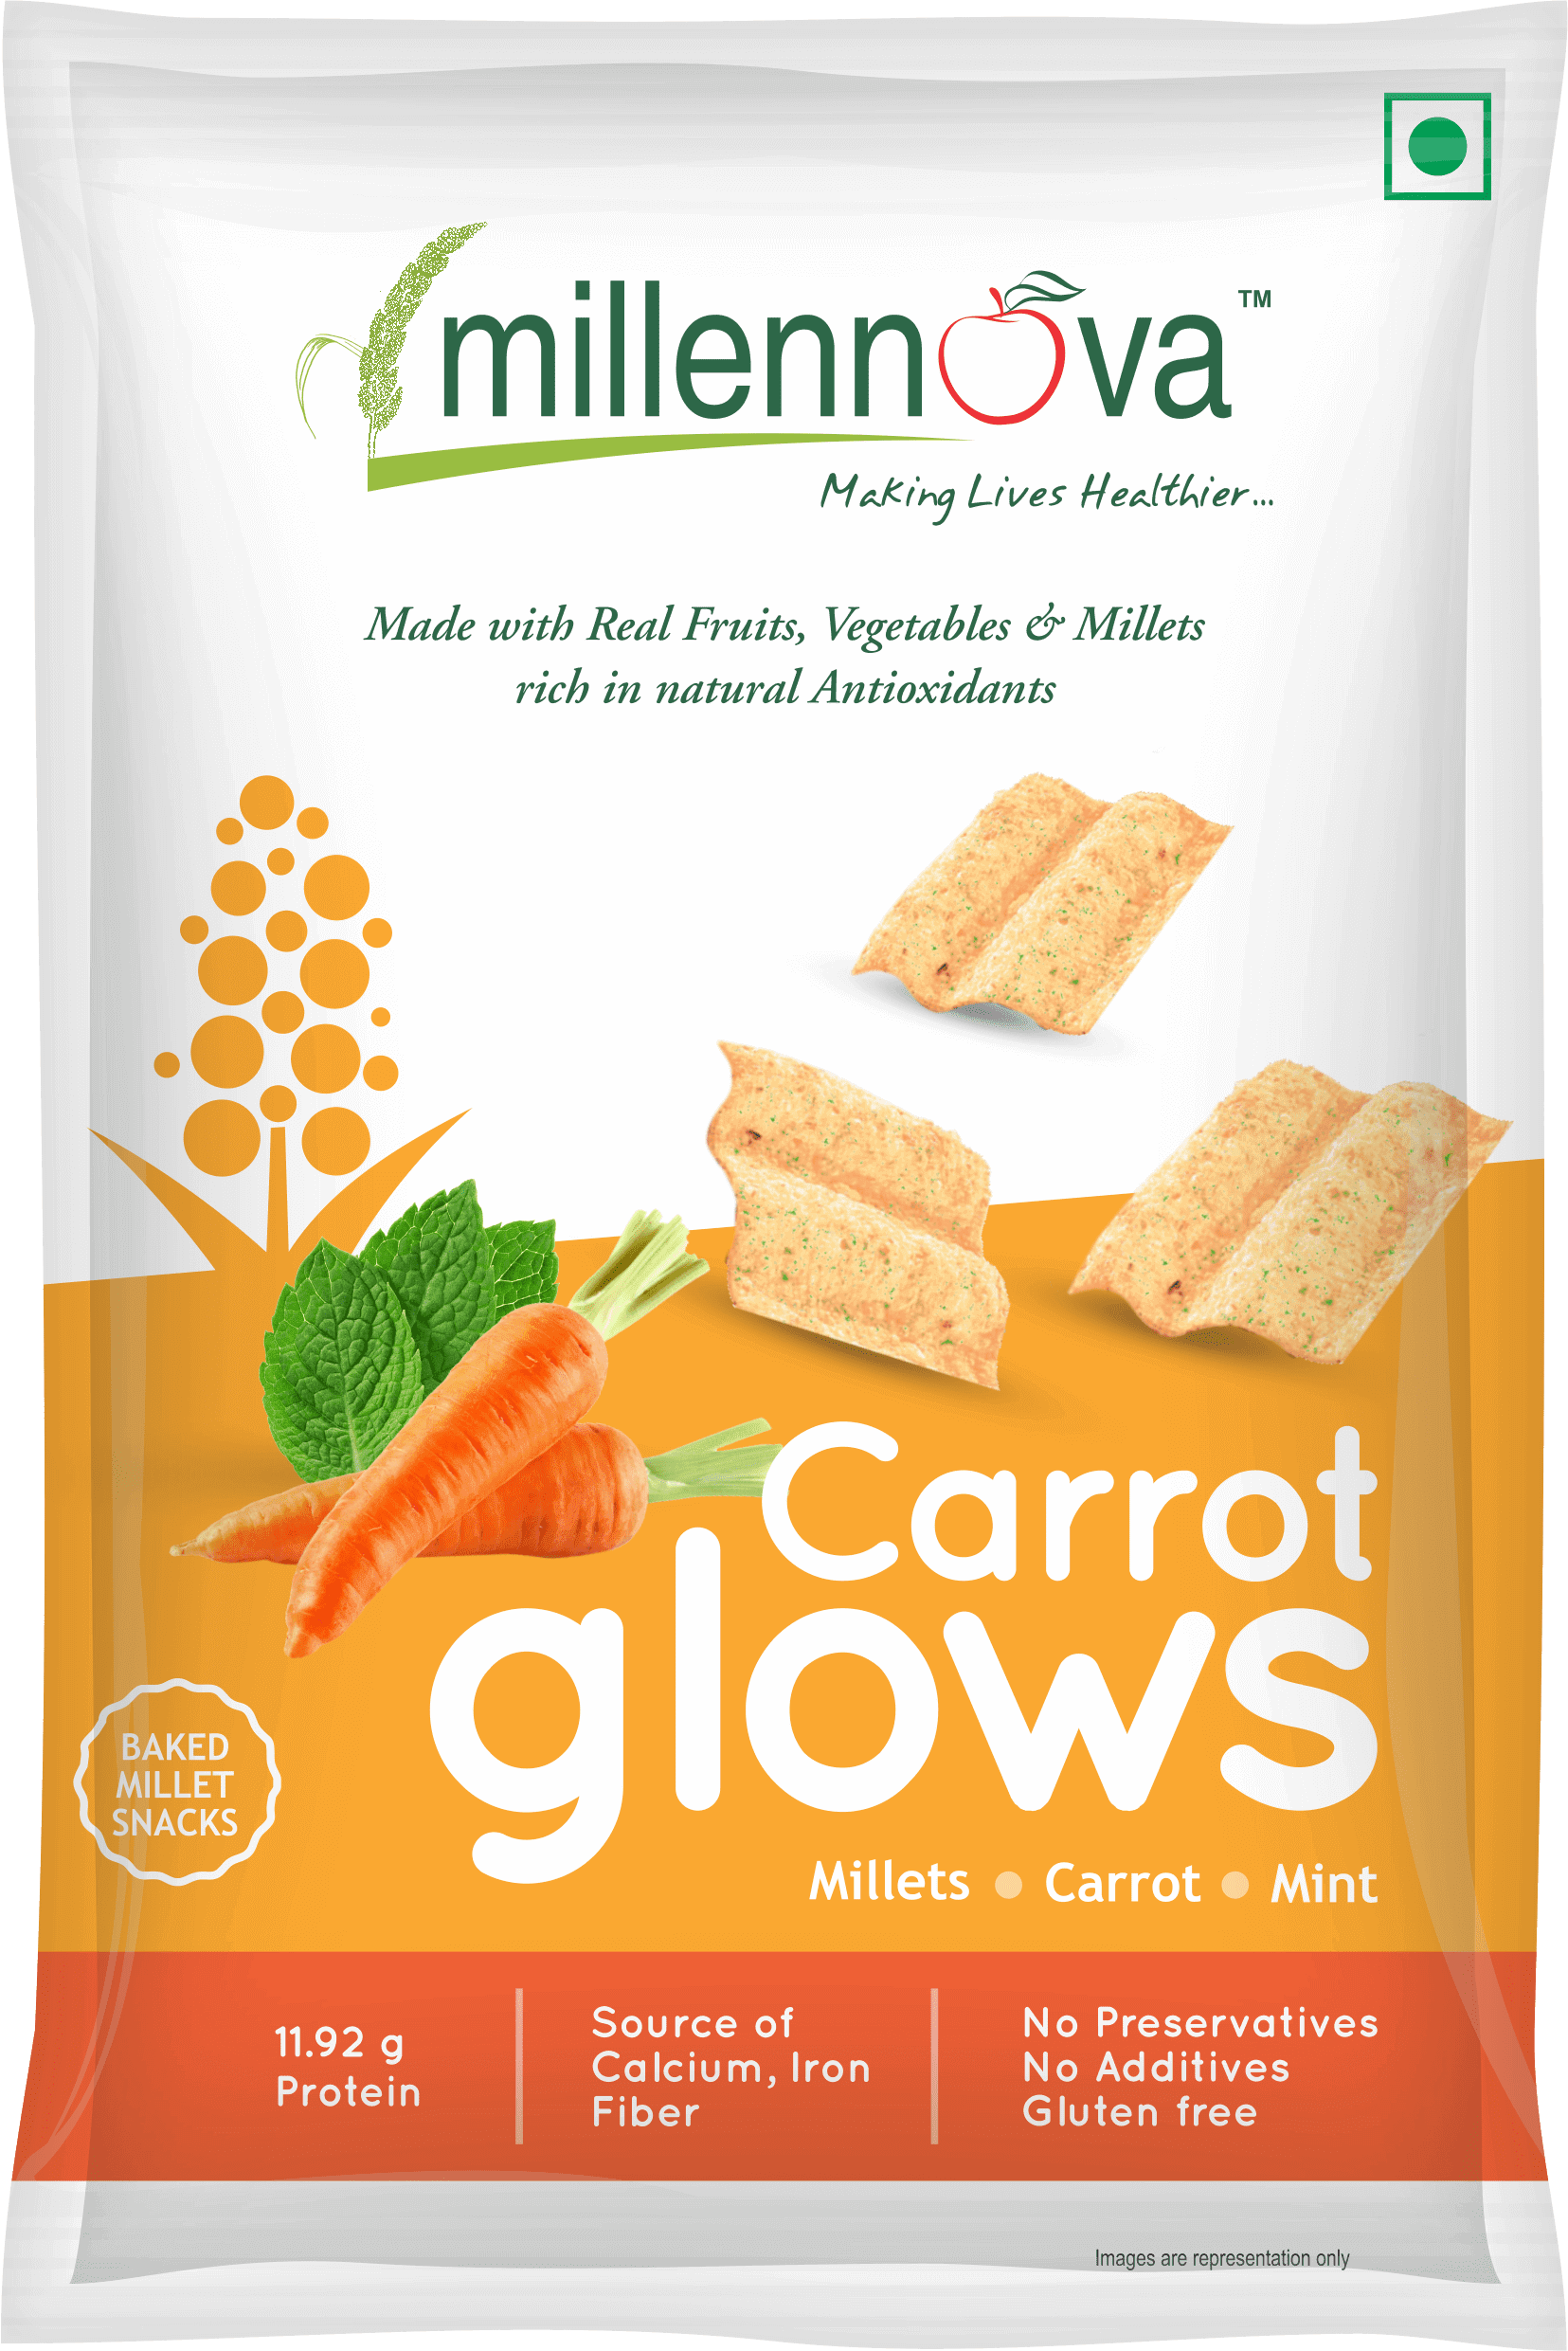 Carrot Glows – Made with Millets, Carrots, Mint & Pulses